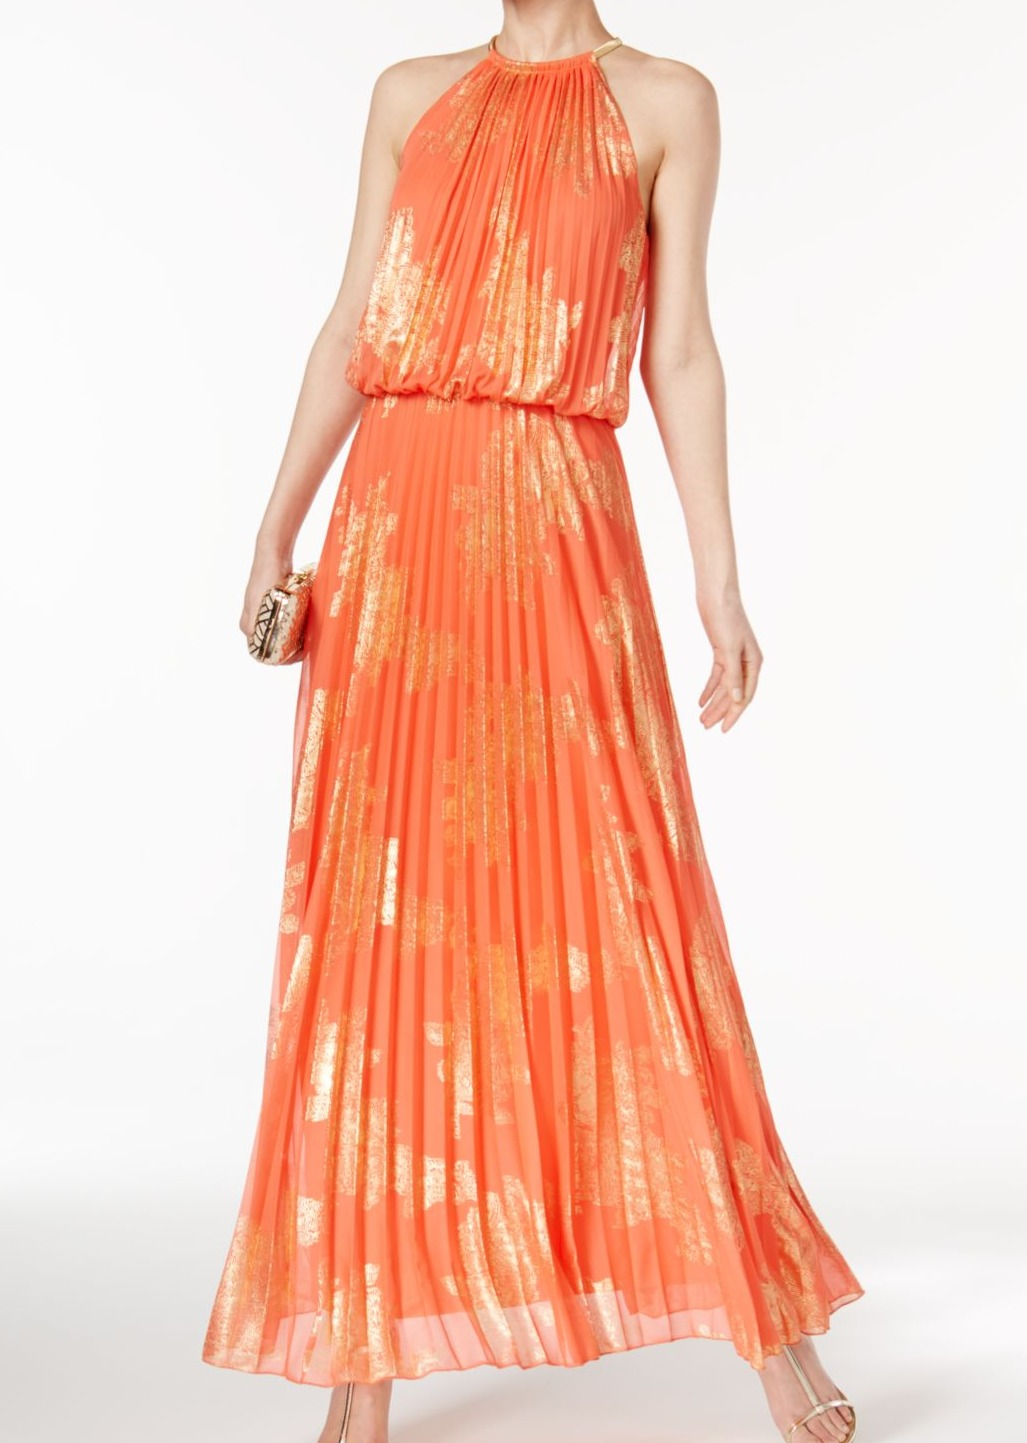 83f11d7f55a We have more MSK in Size 10 - Click Here Click to see all Womens Dresses in  Size 10